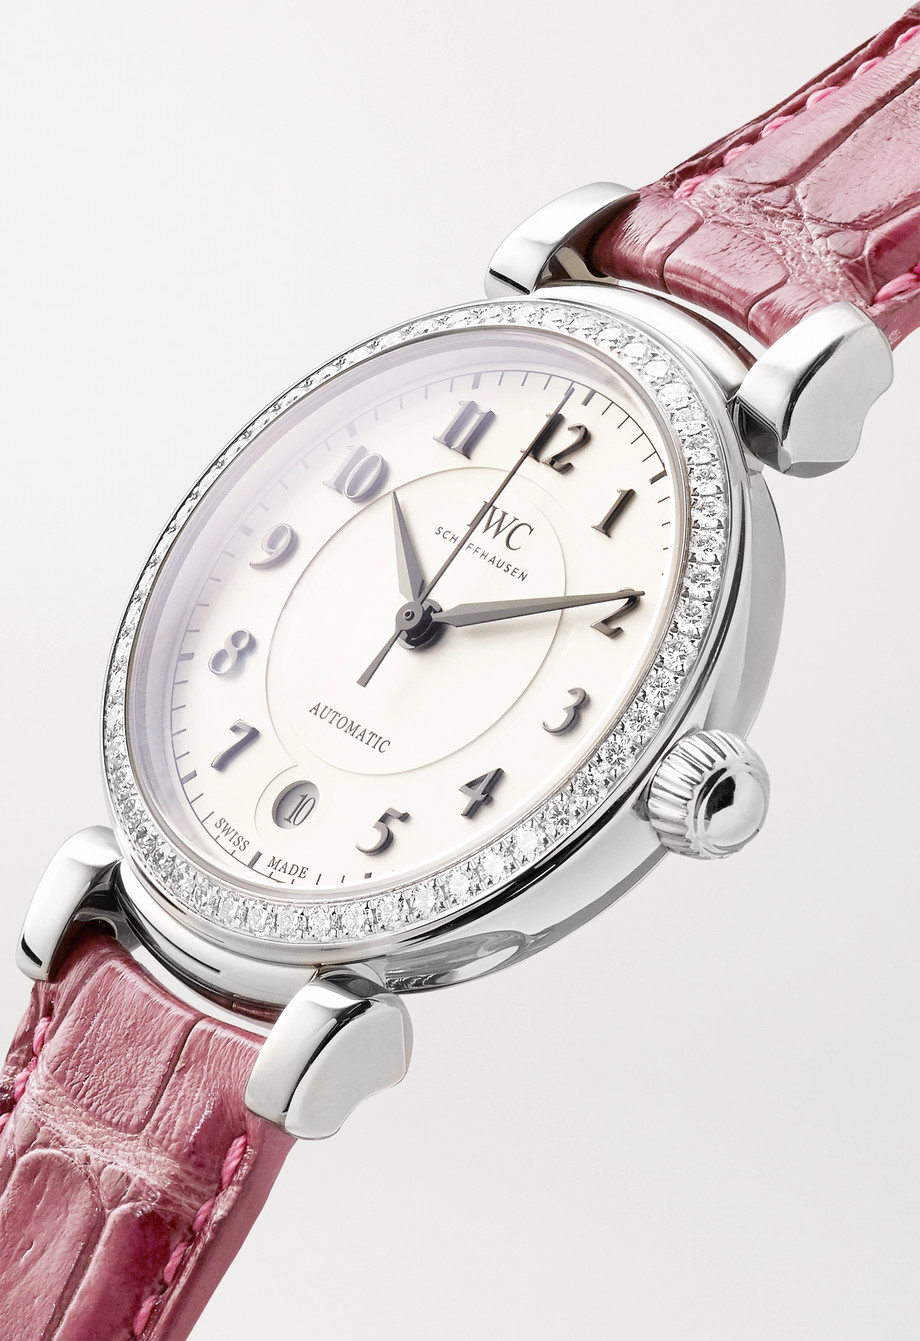 IWC SCHAFFHAUSEN Da Vinci Automatic 36mm stainless steel, alligator and diamond watch